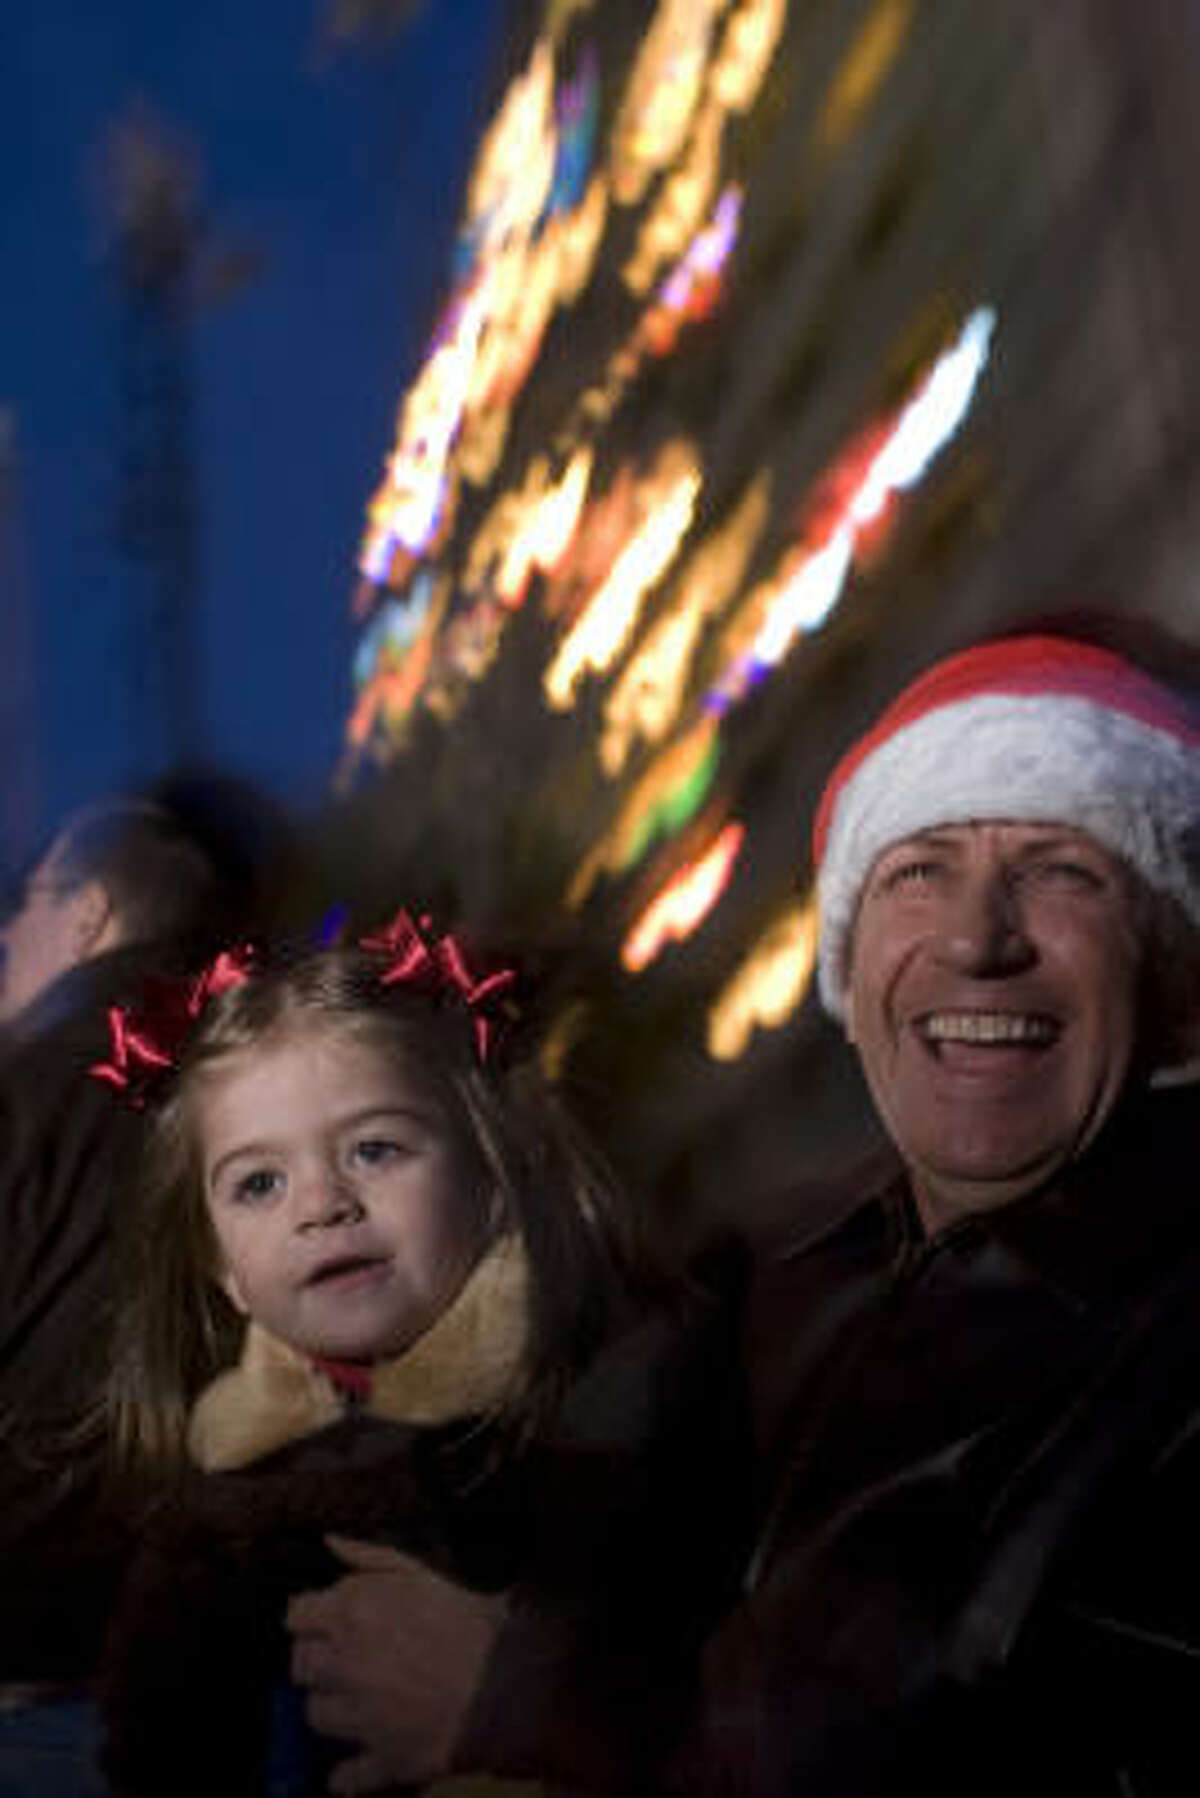 Tarfin Micu and his daughter, Bryanna, 2, enjoy the sights.